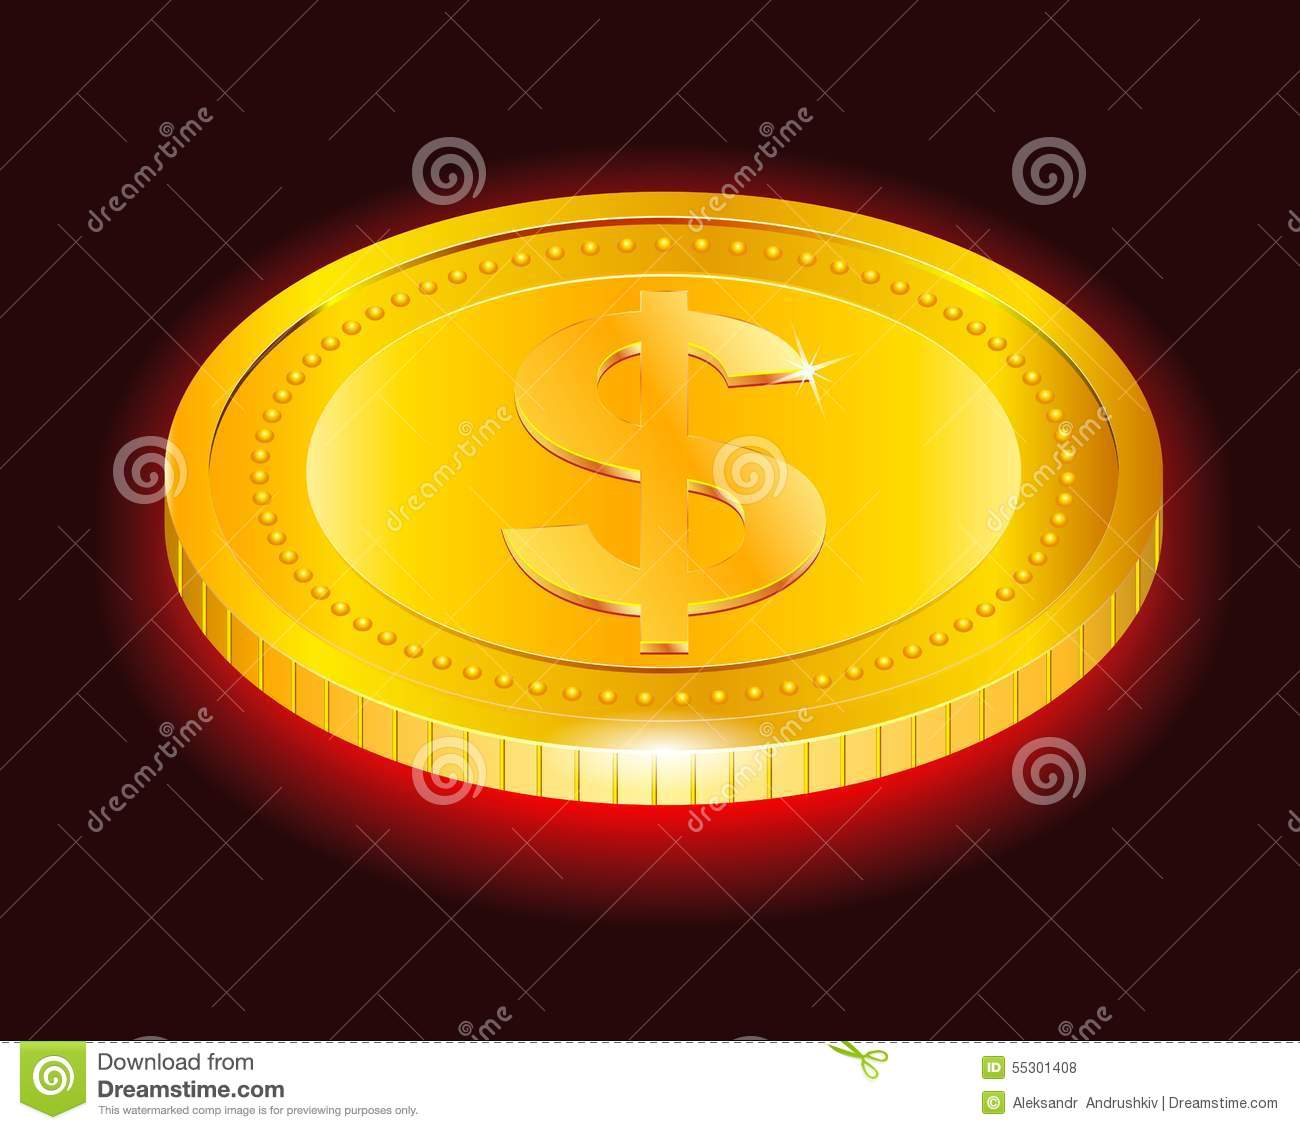 gold coins black background - photo #27